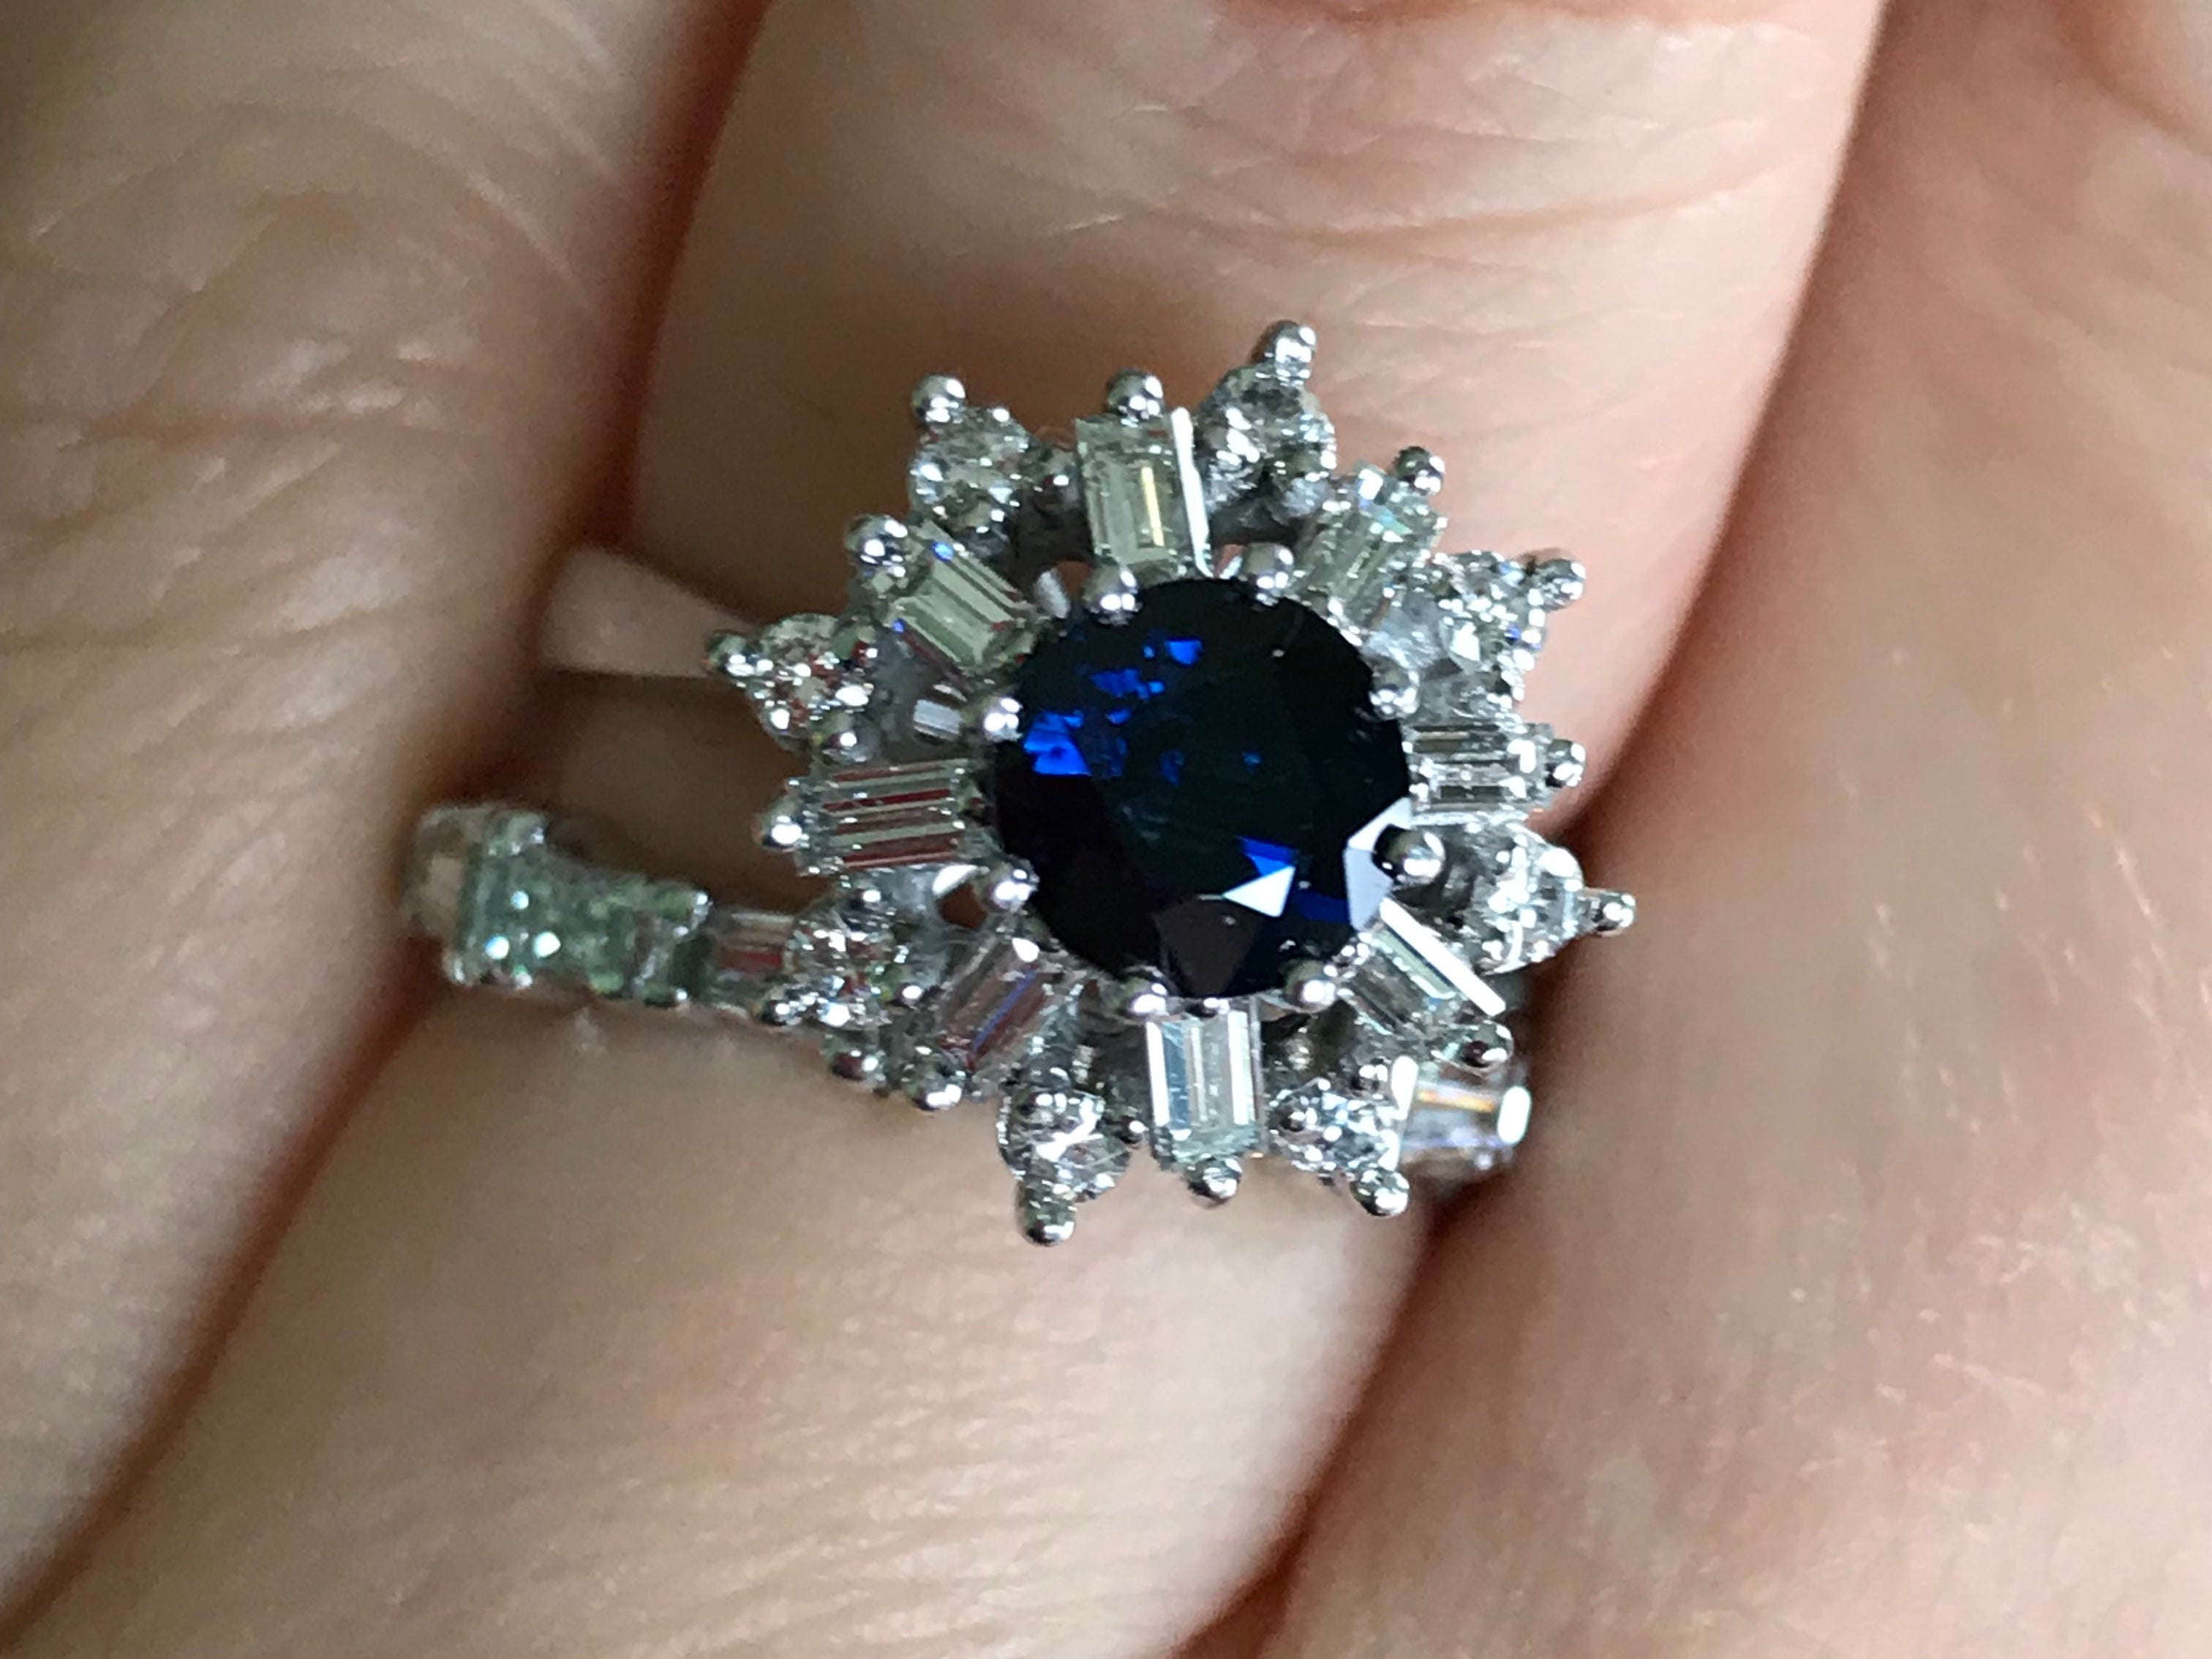 18k white gold blue sapphire and diamond starburst cluster ring - Pre-loved